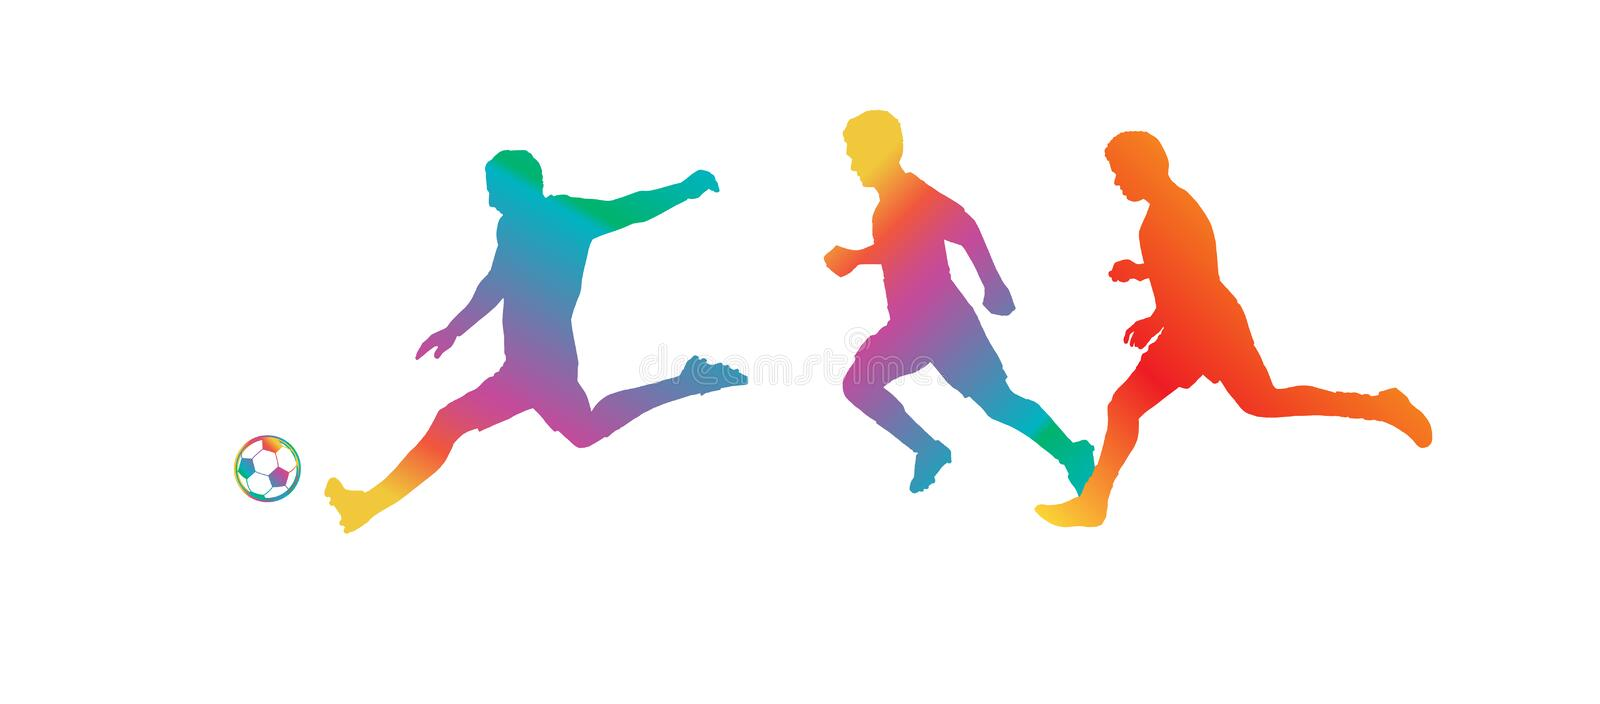 Soccer Players Silhouettes Championship world cup 2019 football royalty free illustration